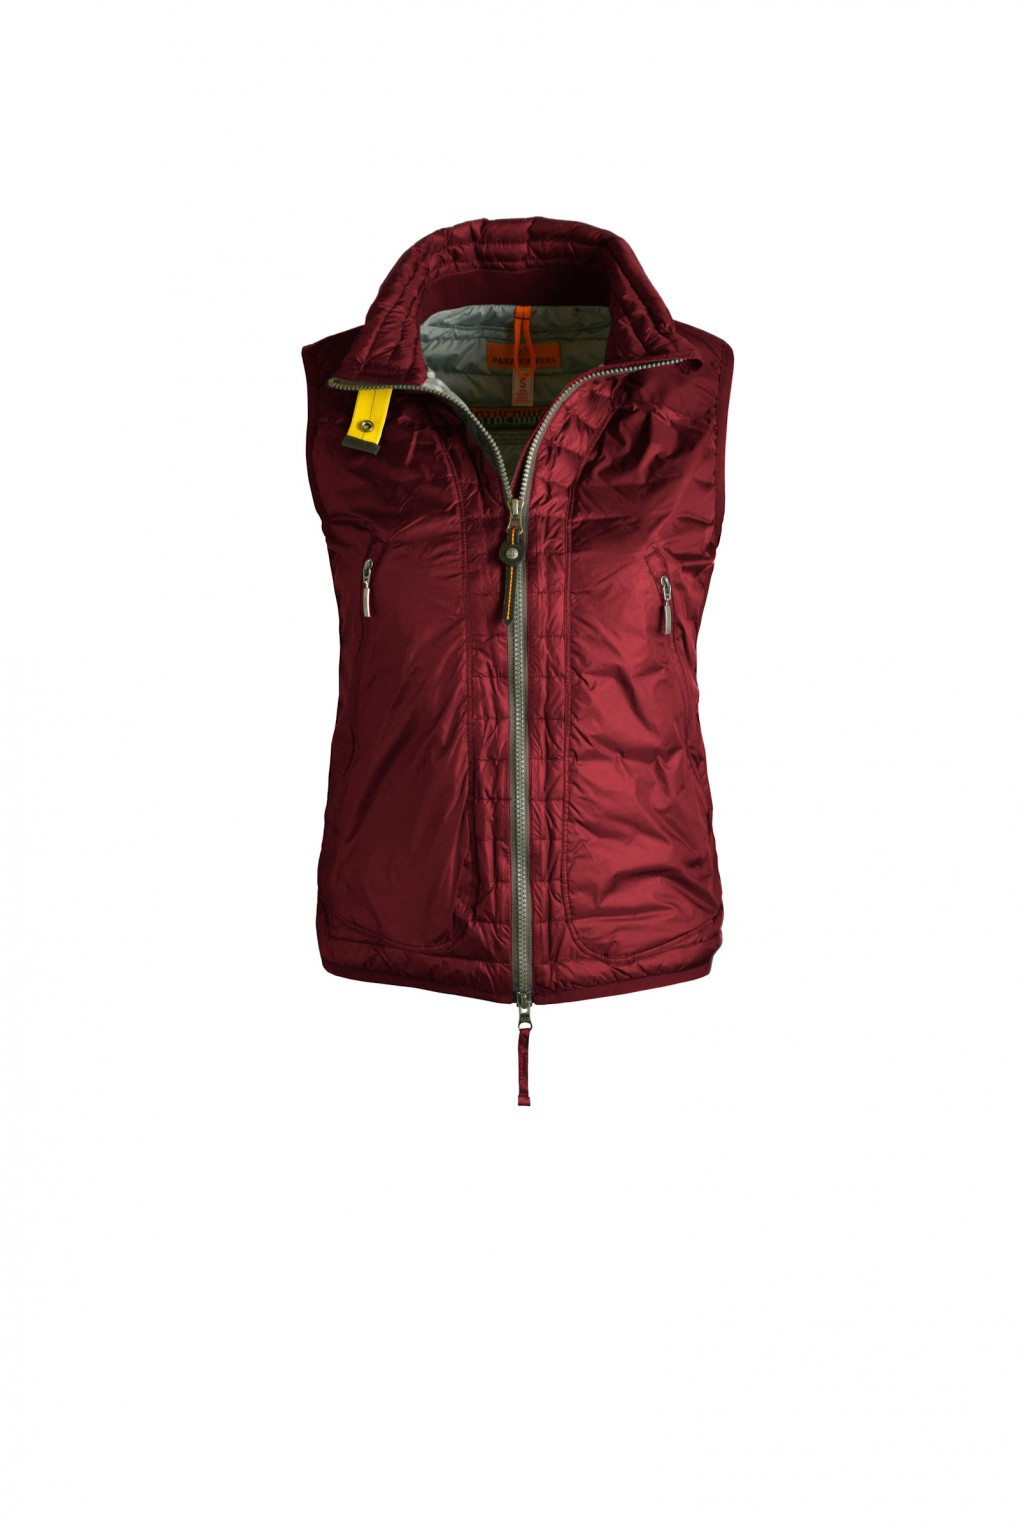 parajumpers BRUNA woman outerwear Red